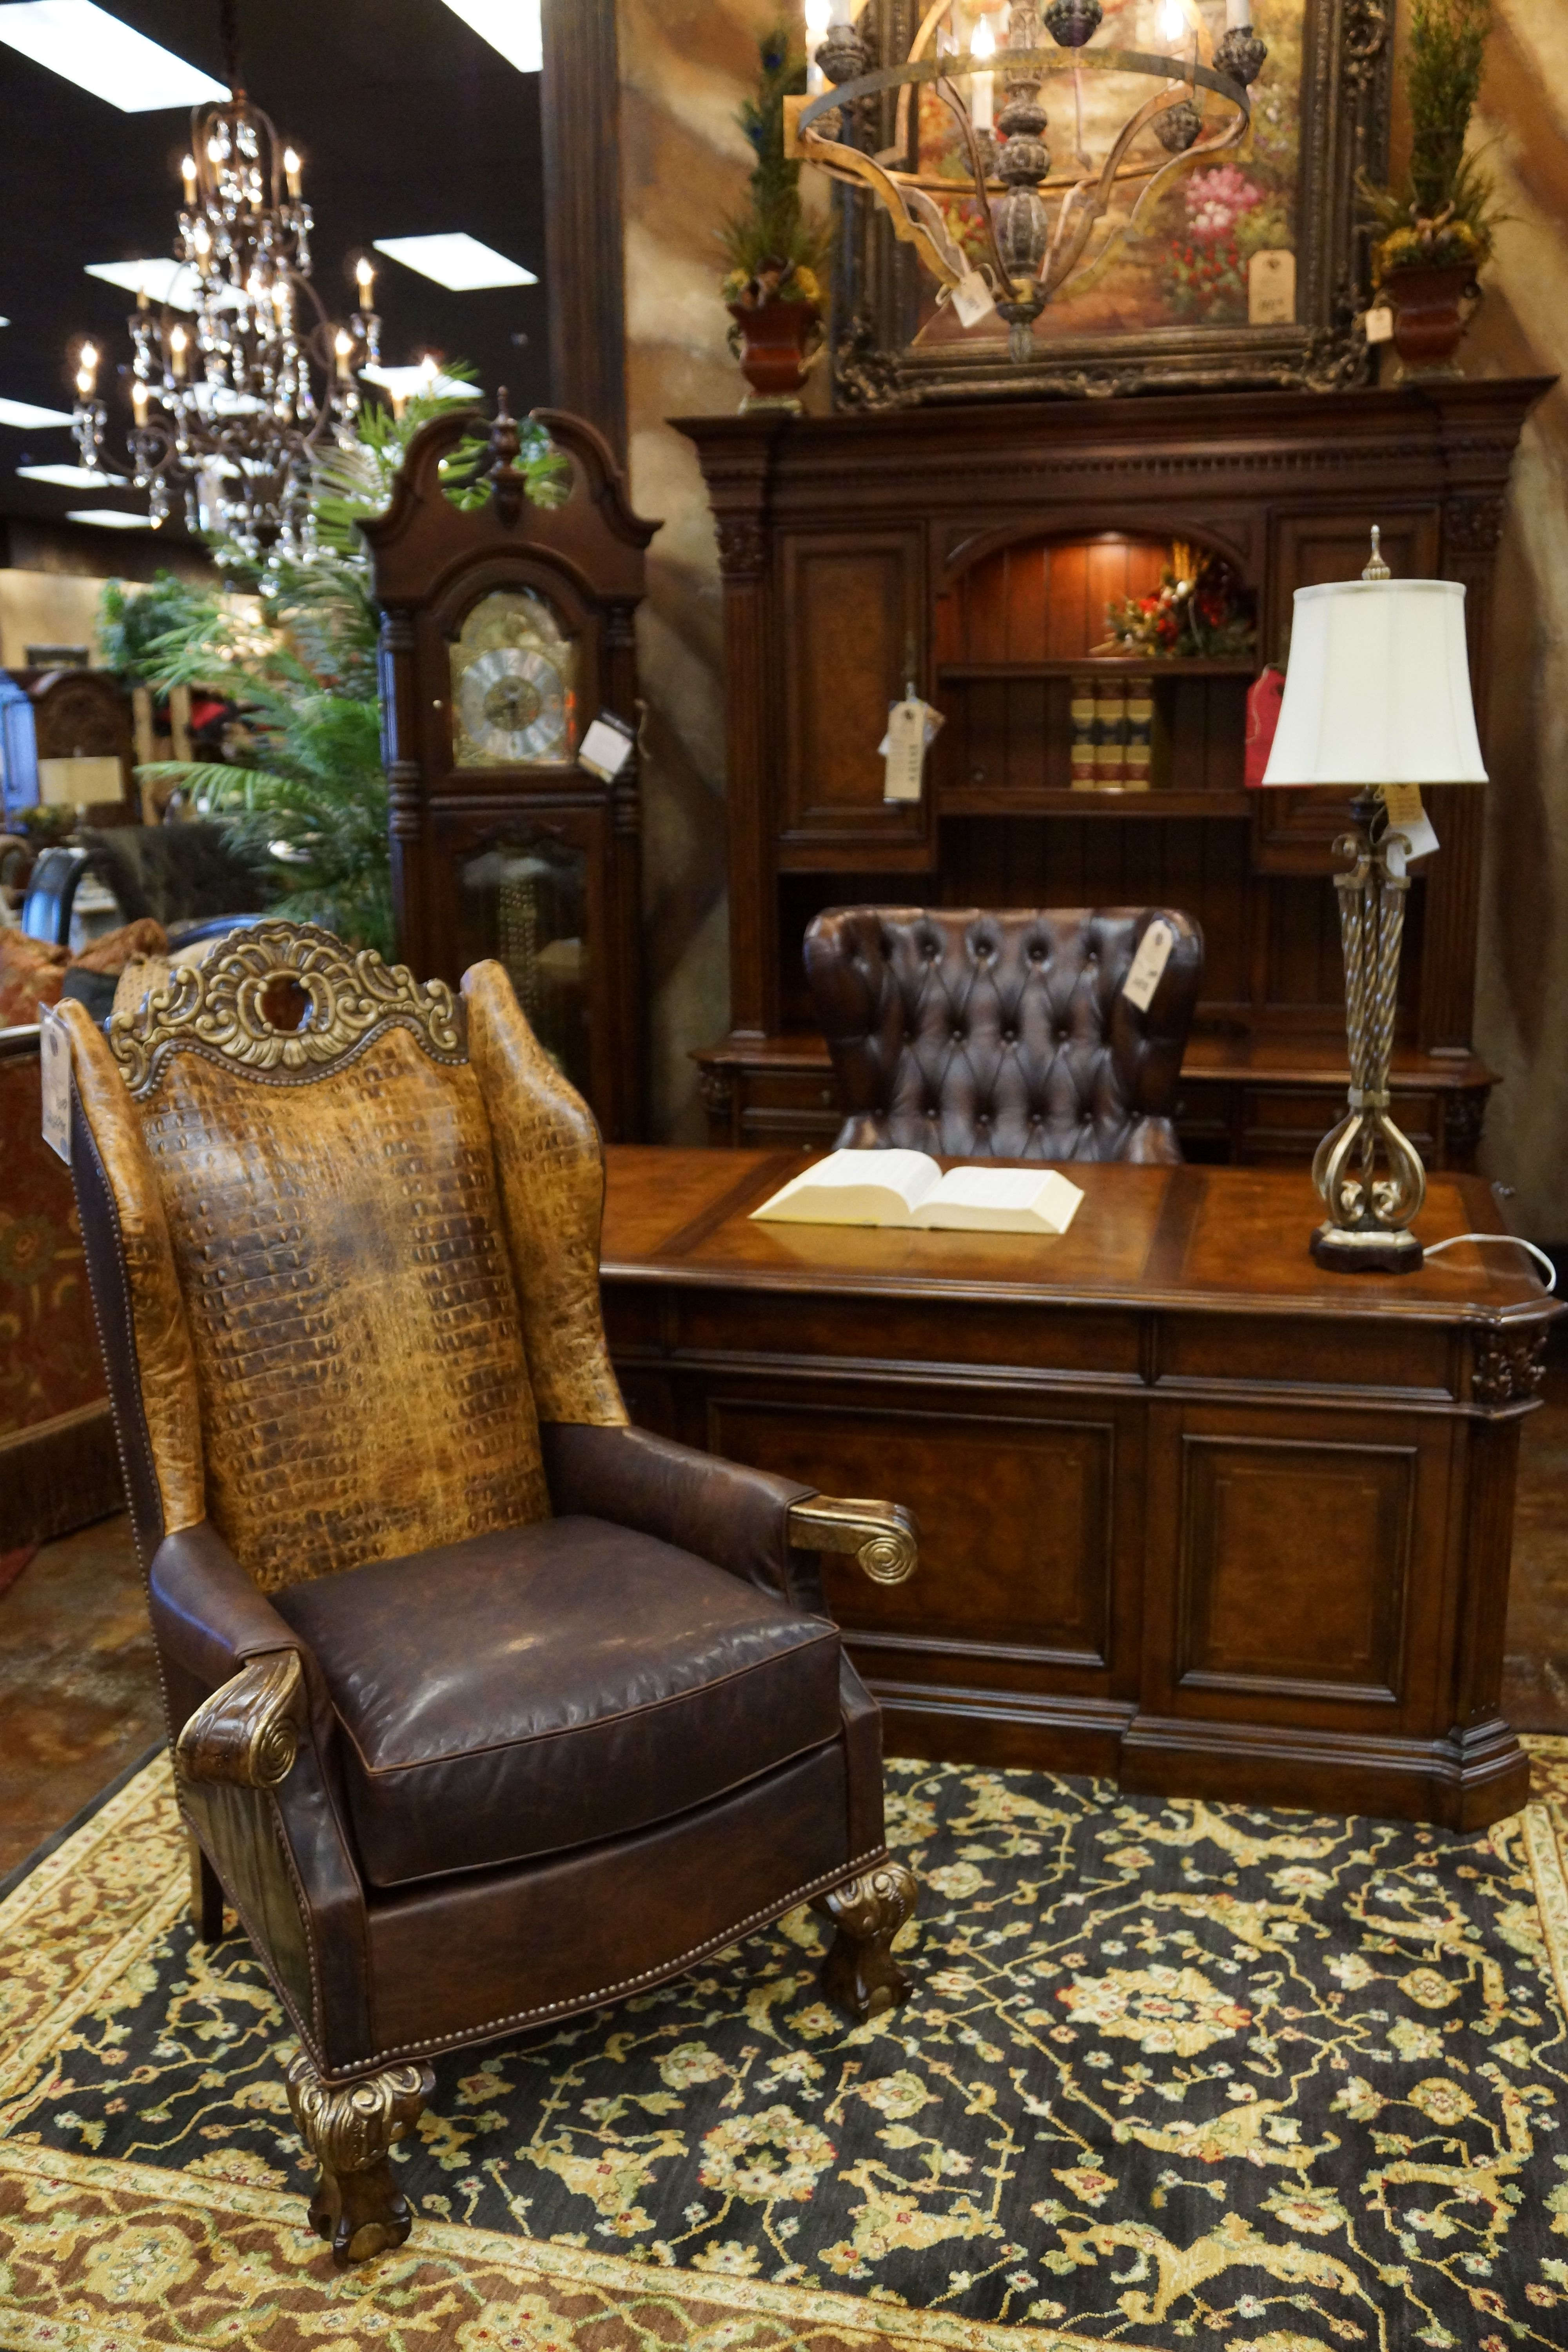 Attractive Available At Carteru0027s Furniture, Midland, Texas 432 682 2843 Http:/